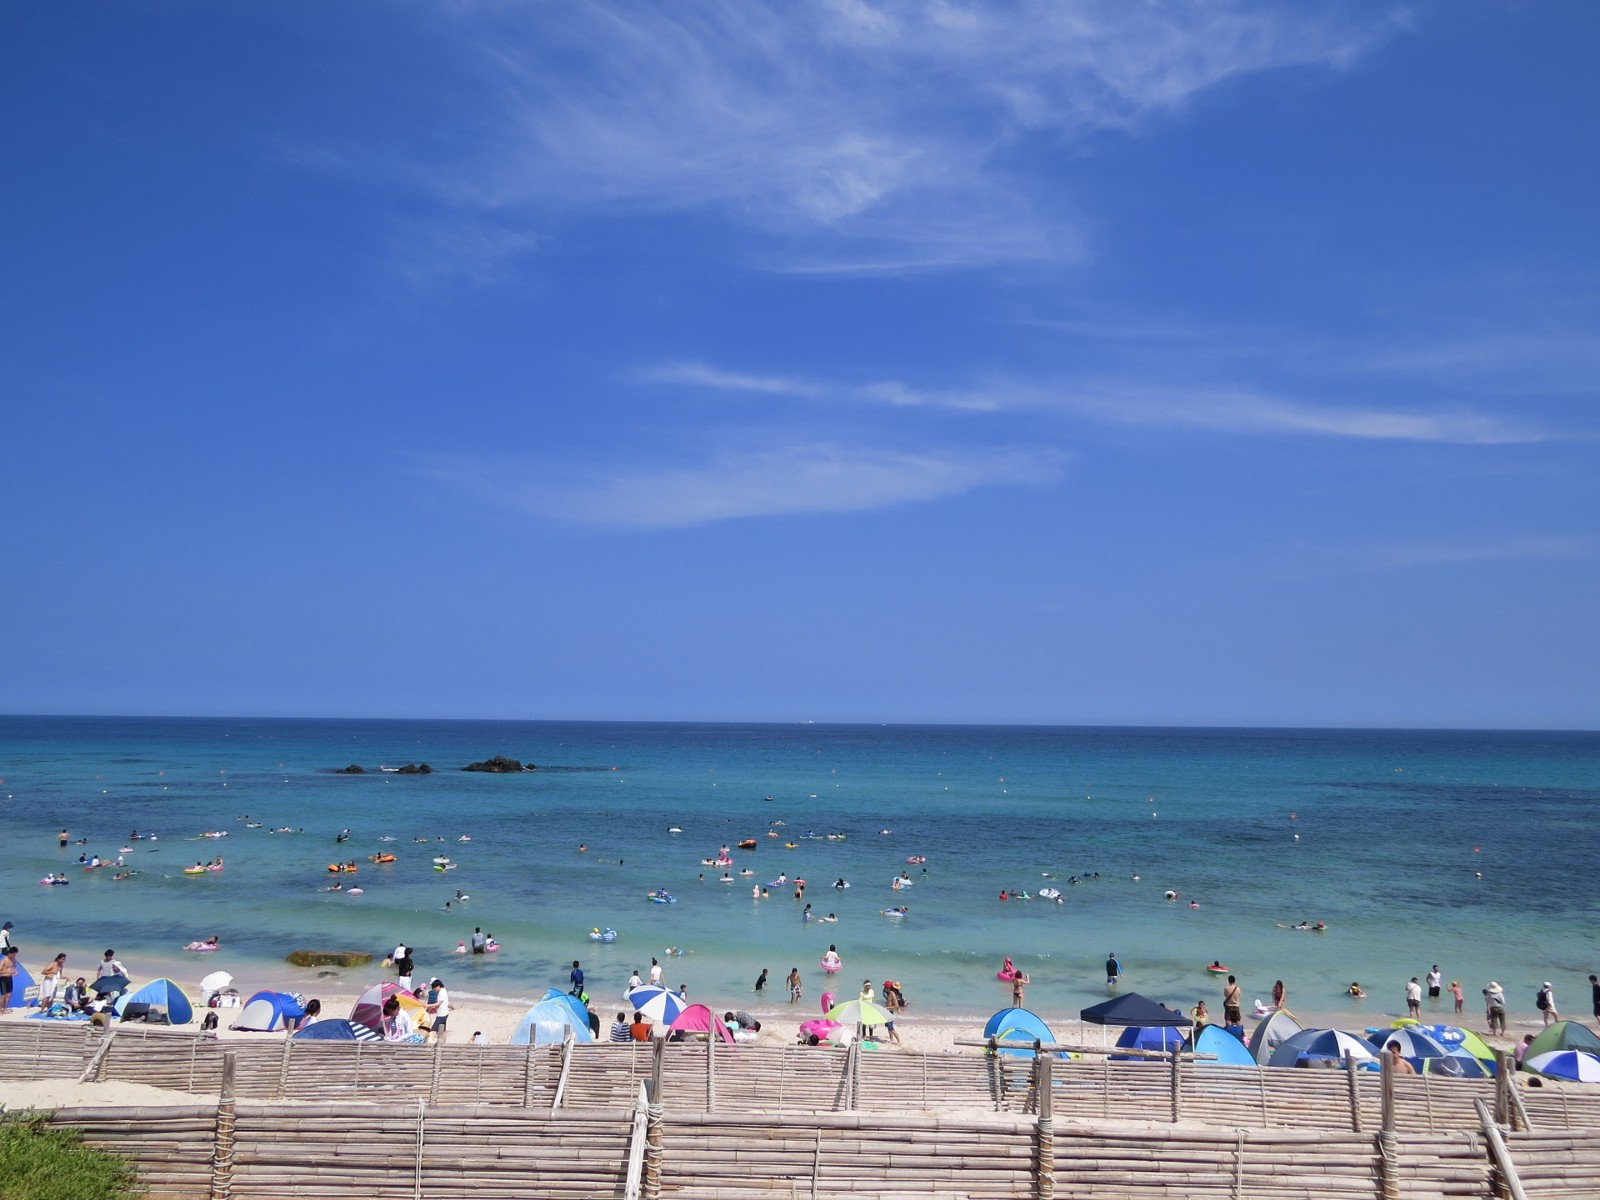 Beach at Tsunoshima Island in summer